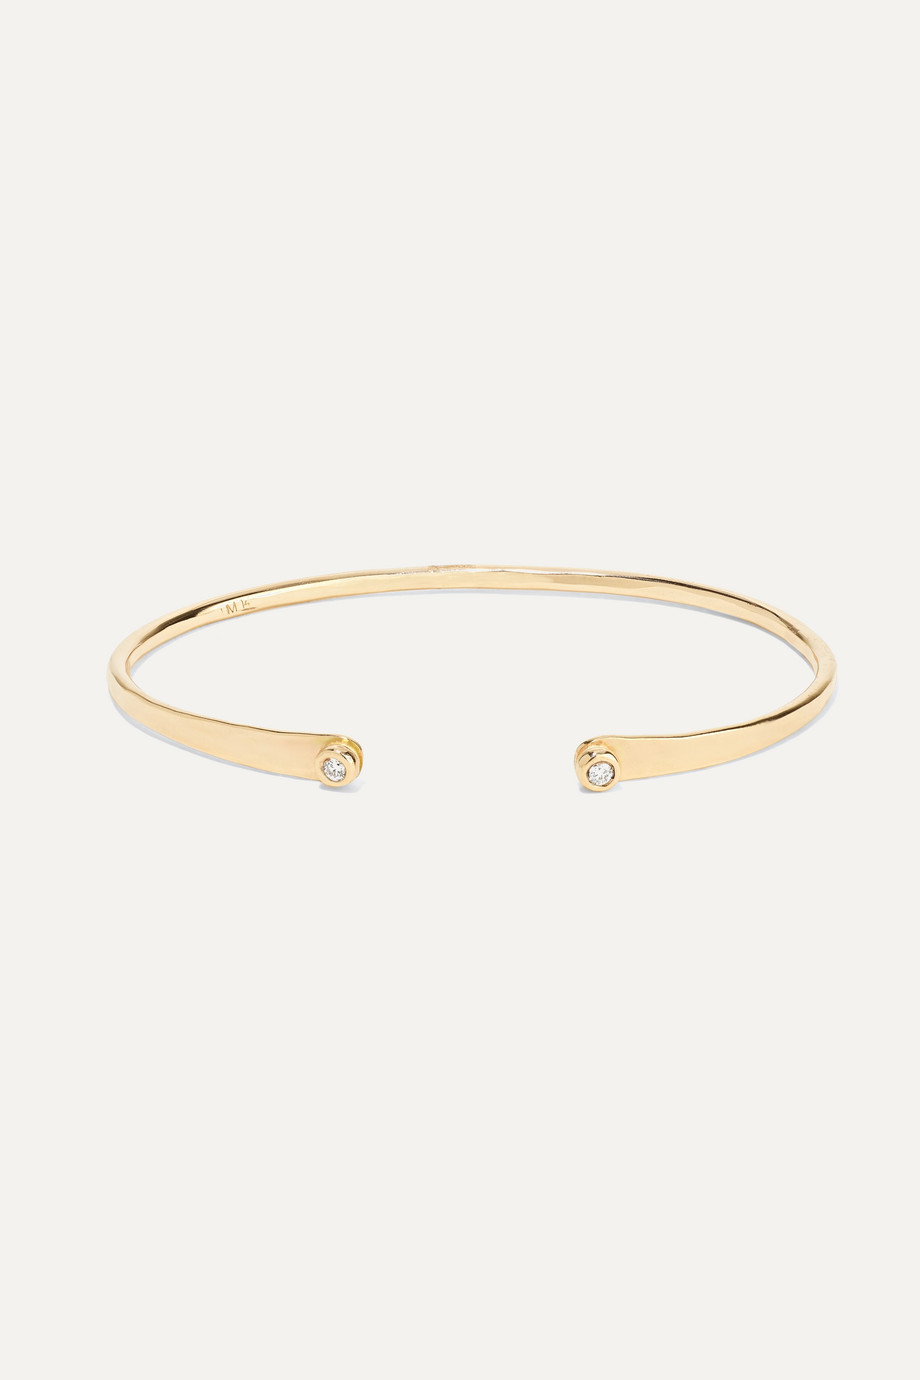 Melissa Joy Manning 14-karat gold diamond cuff